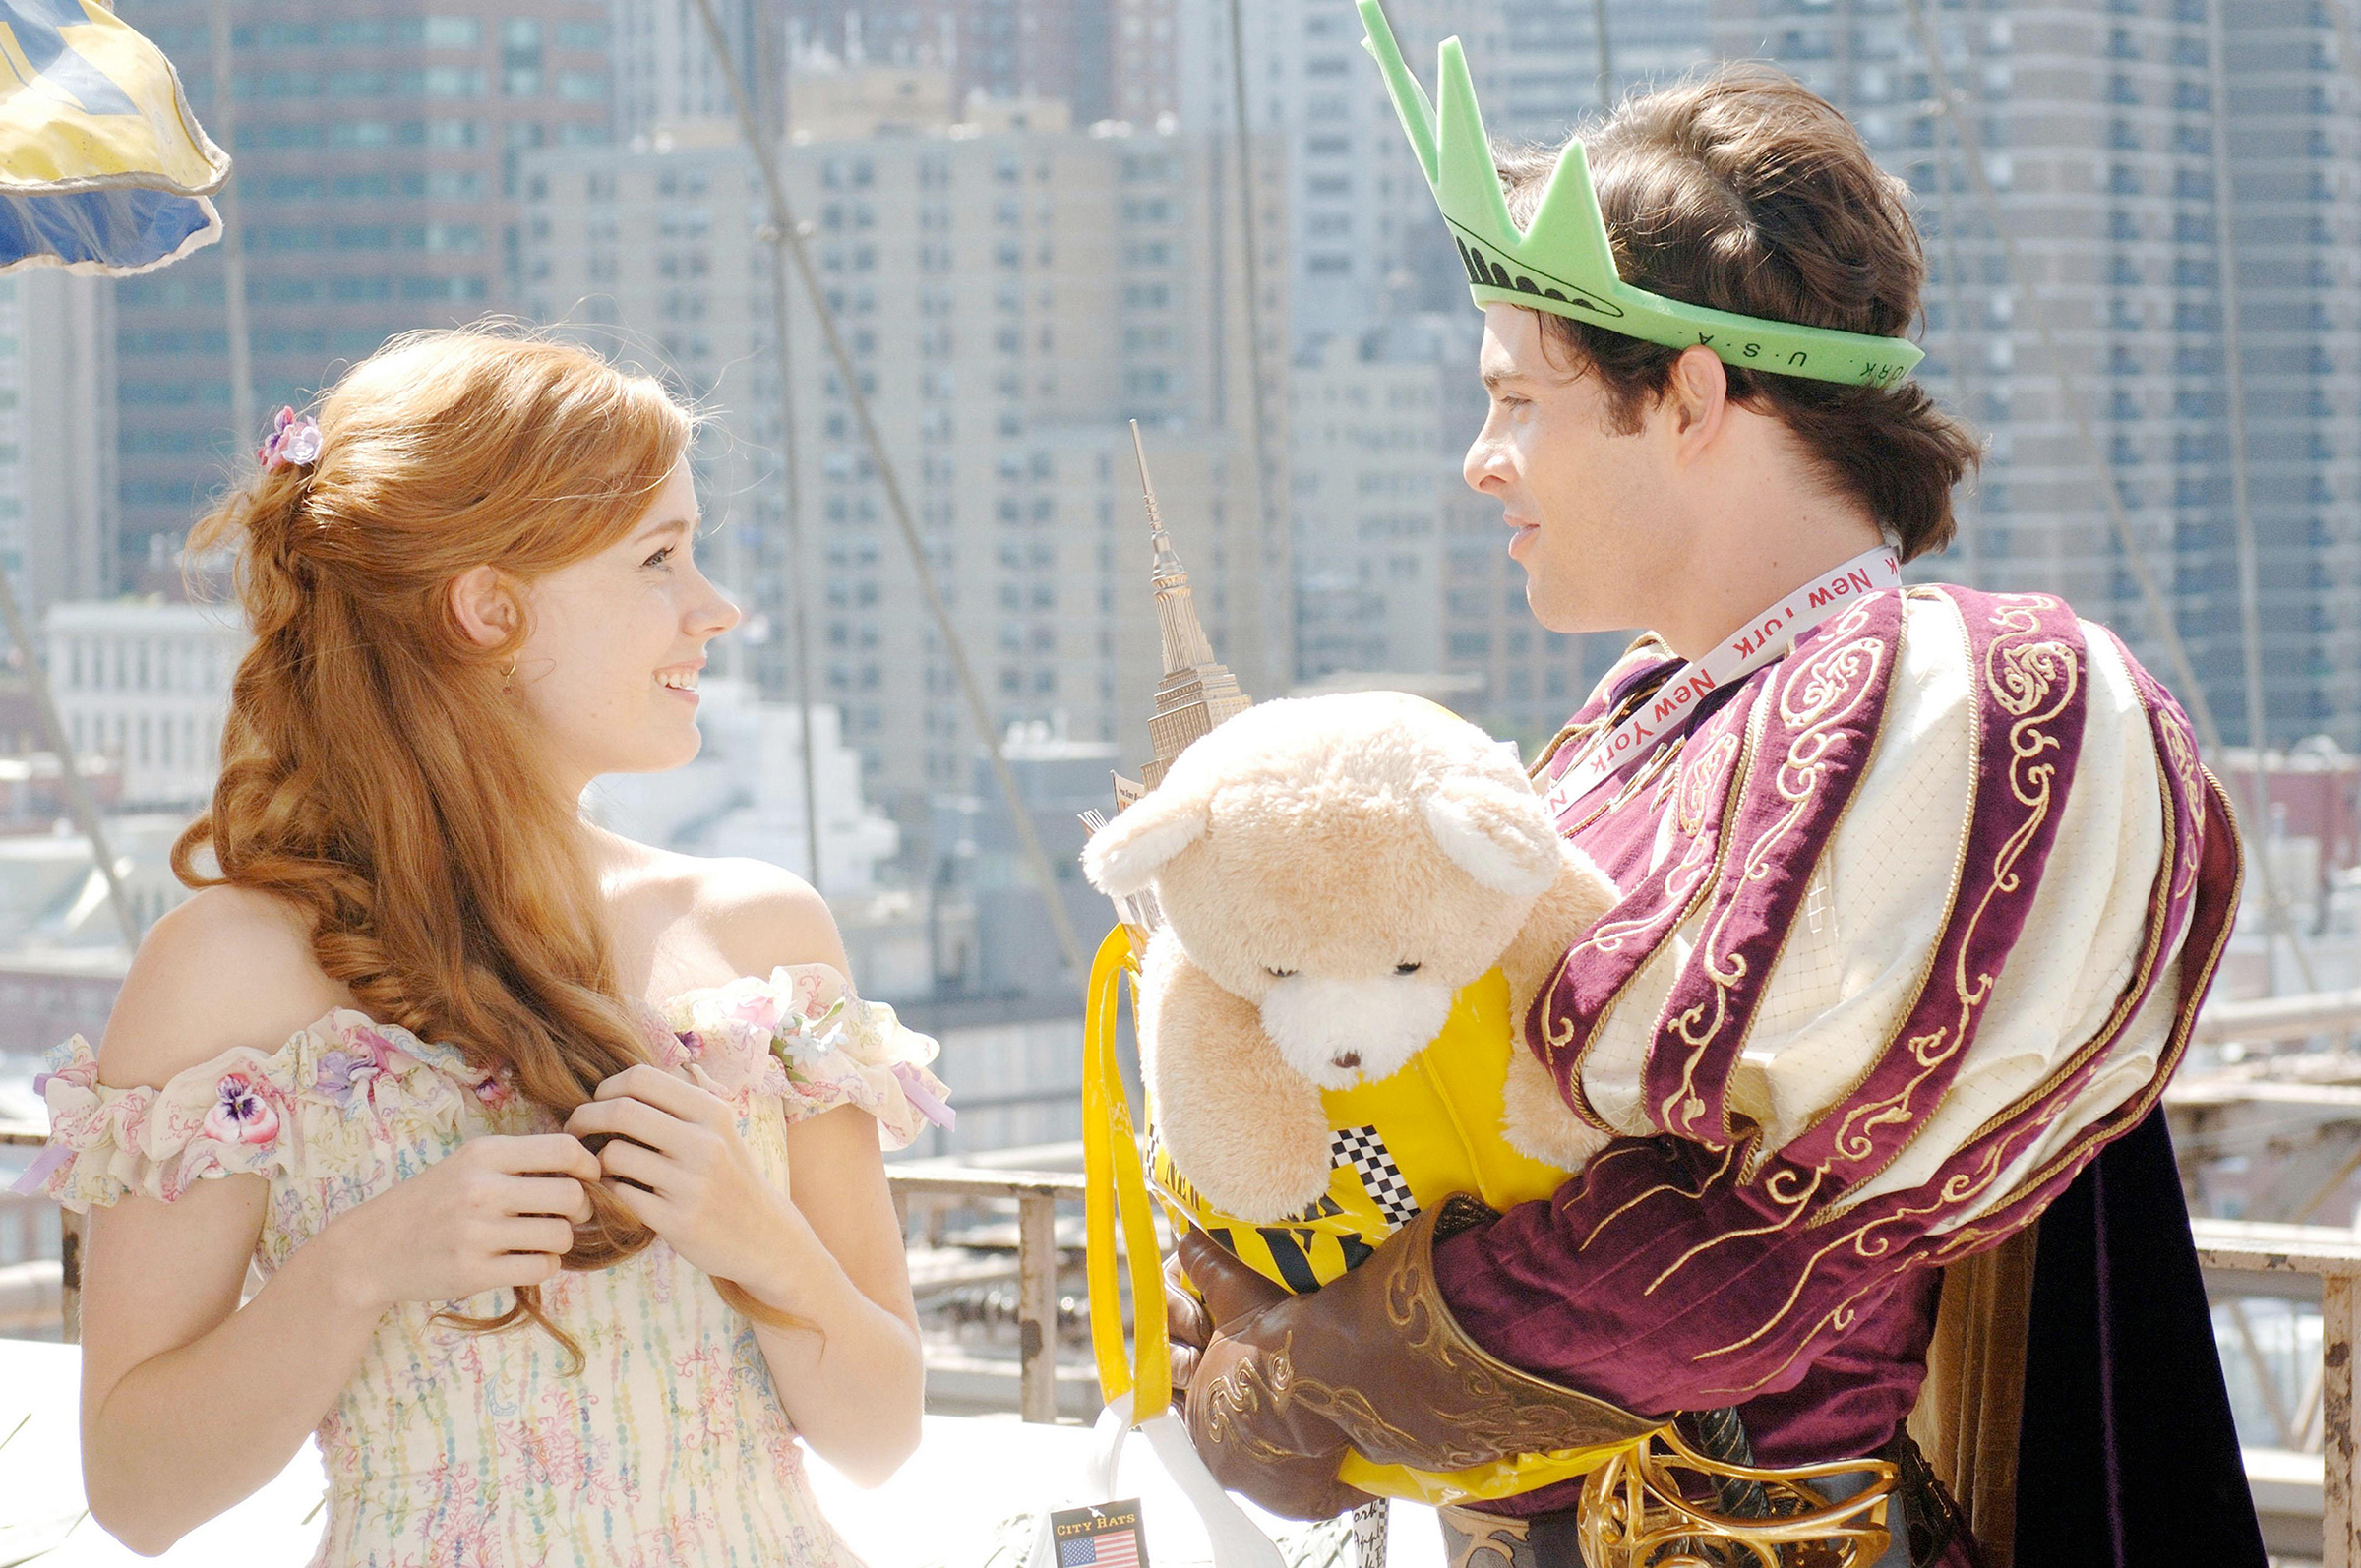 LoveEnchanted Let New York cast its spell